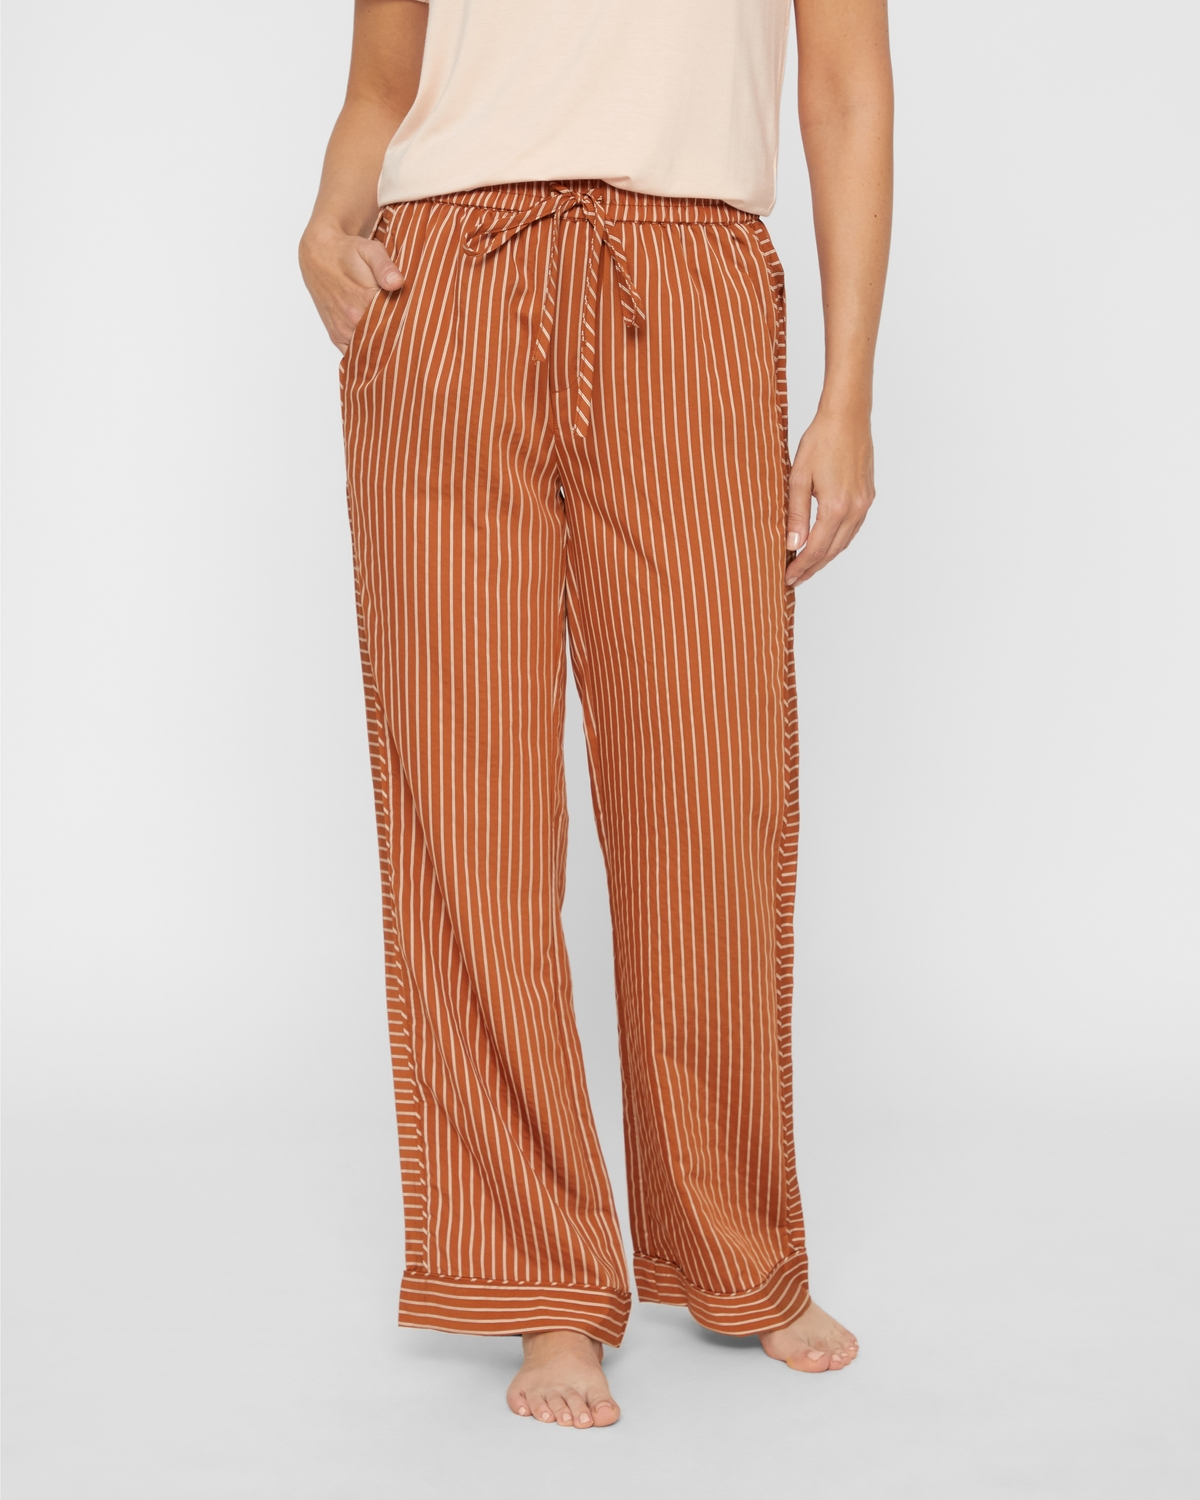 lulu's drawer Havanna pyjama pants